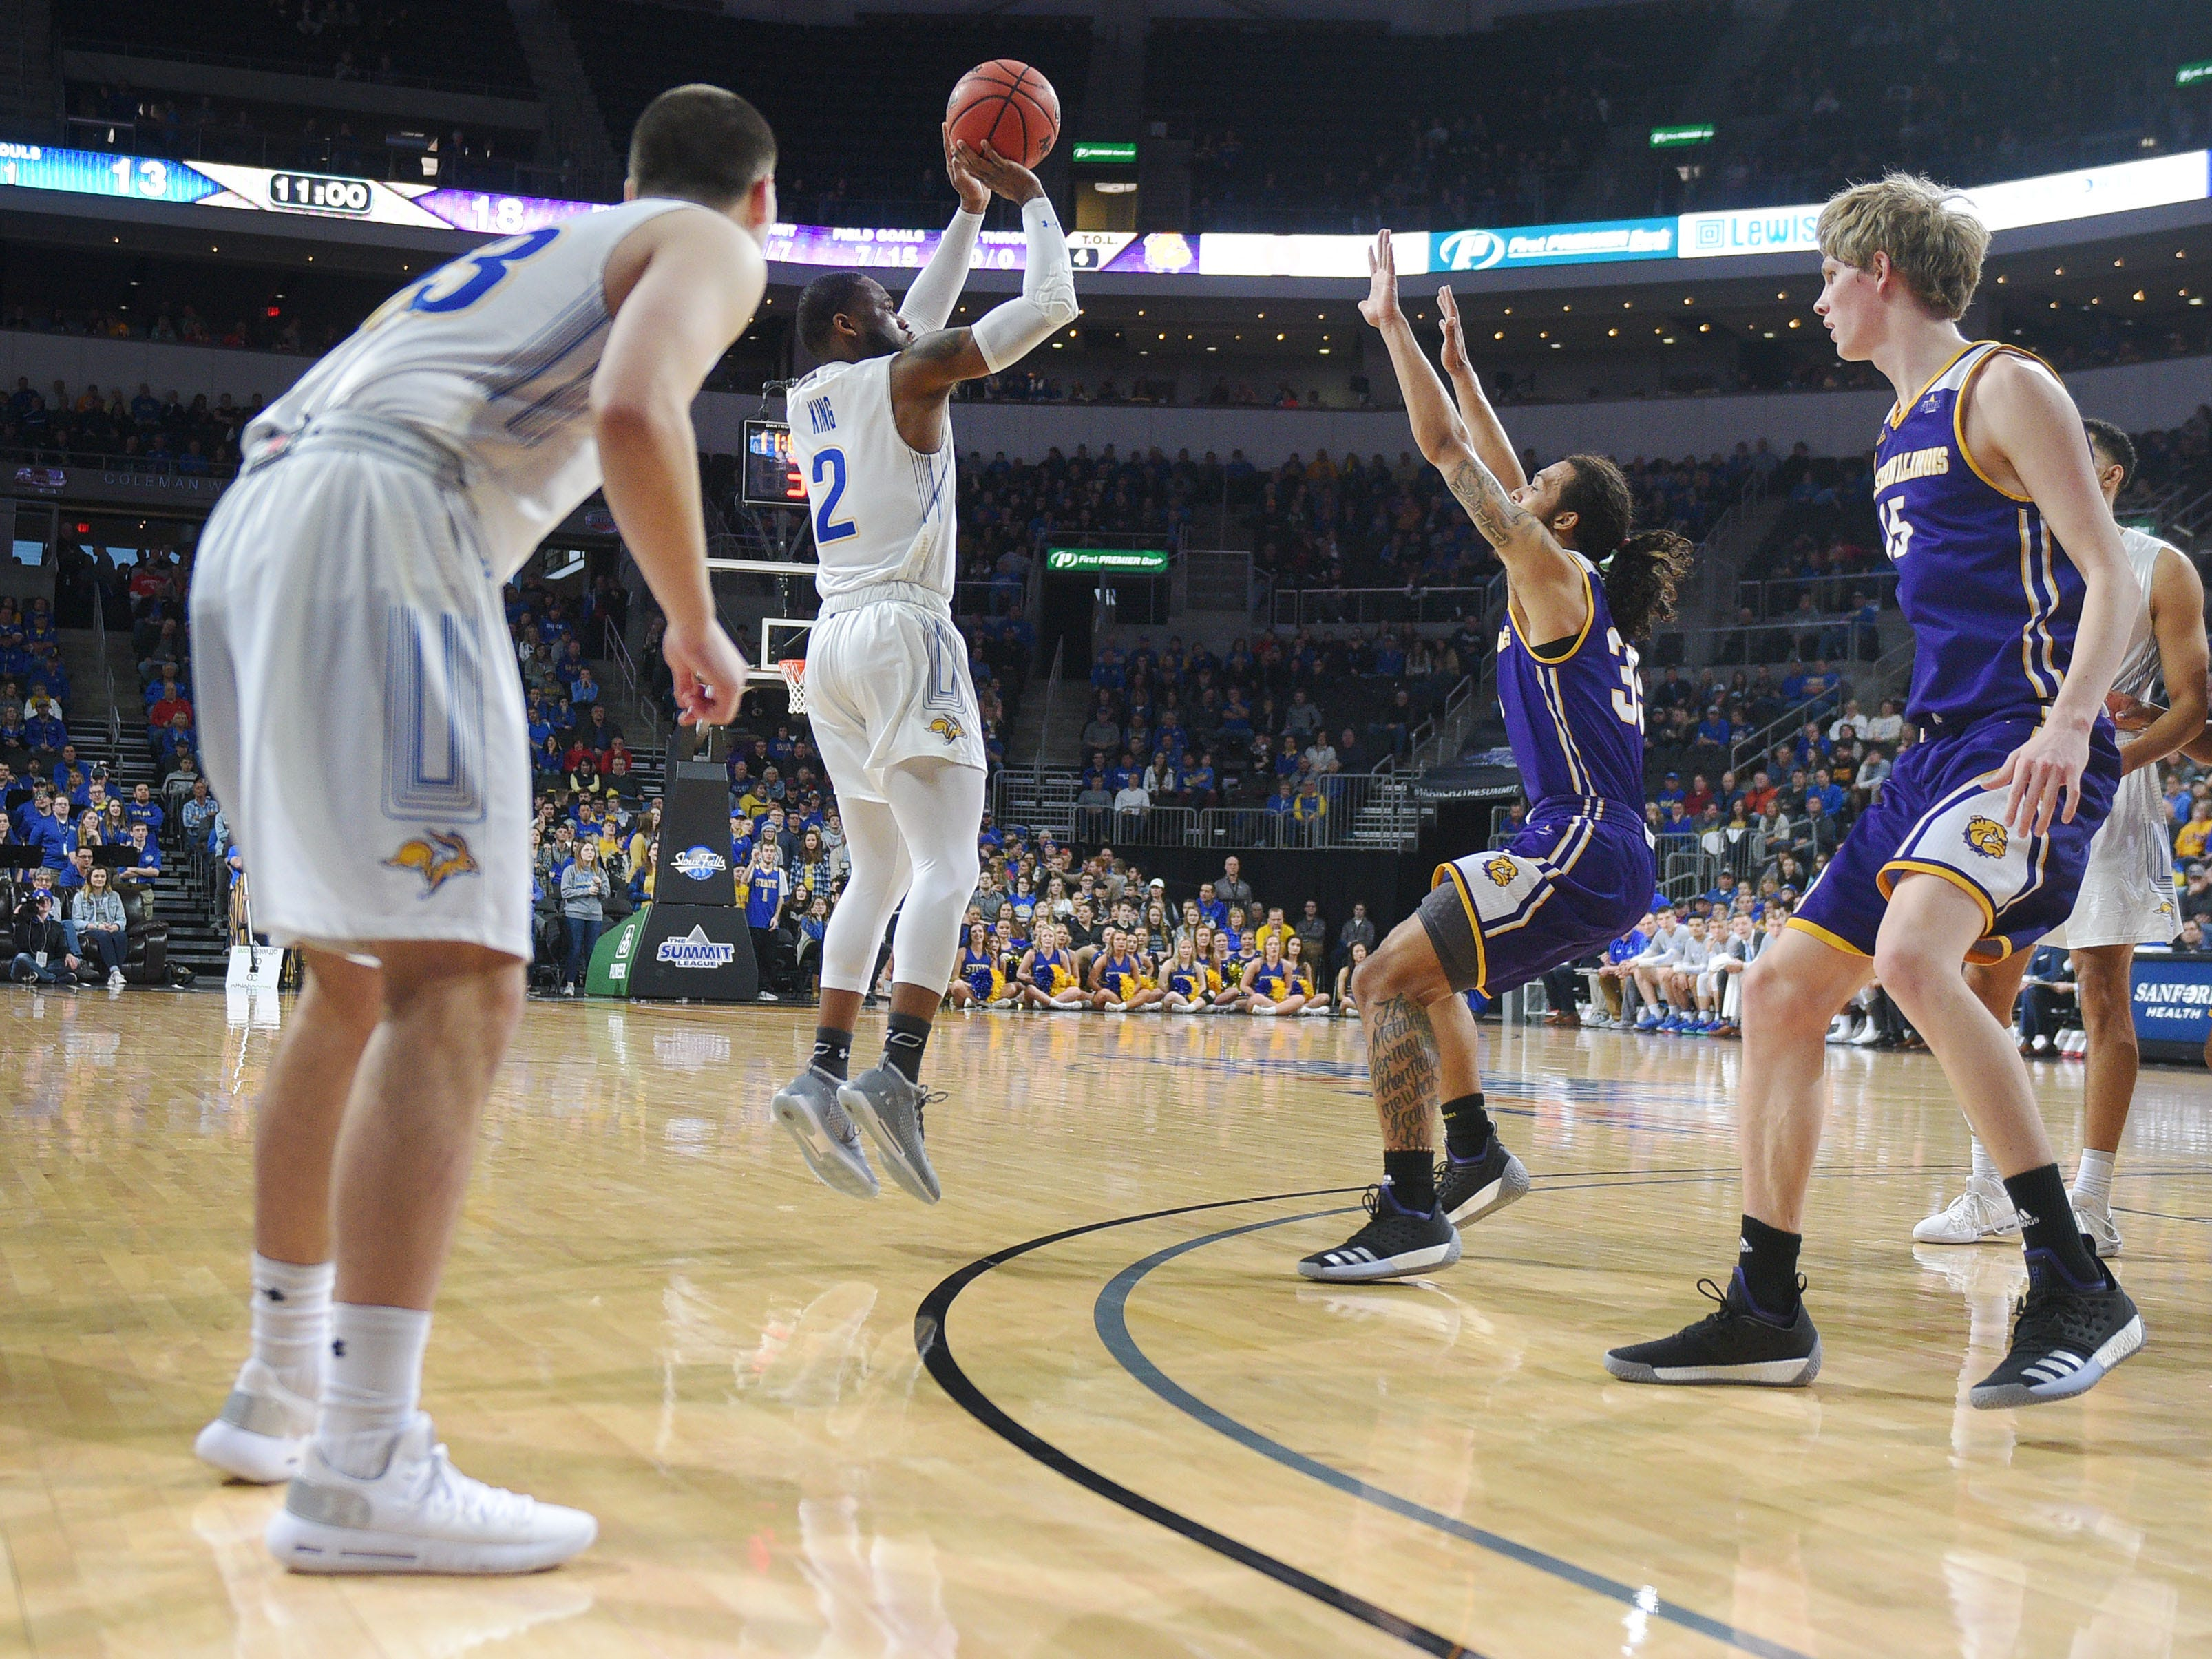 SDSU's Tevin King takes a shot against Western Illinois during the game Saturday, March 9, in the Summit League tournament at the Denny Sanford Premier Center in Sioux Falls.